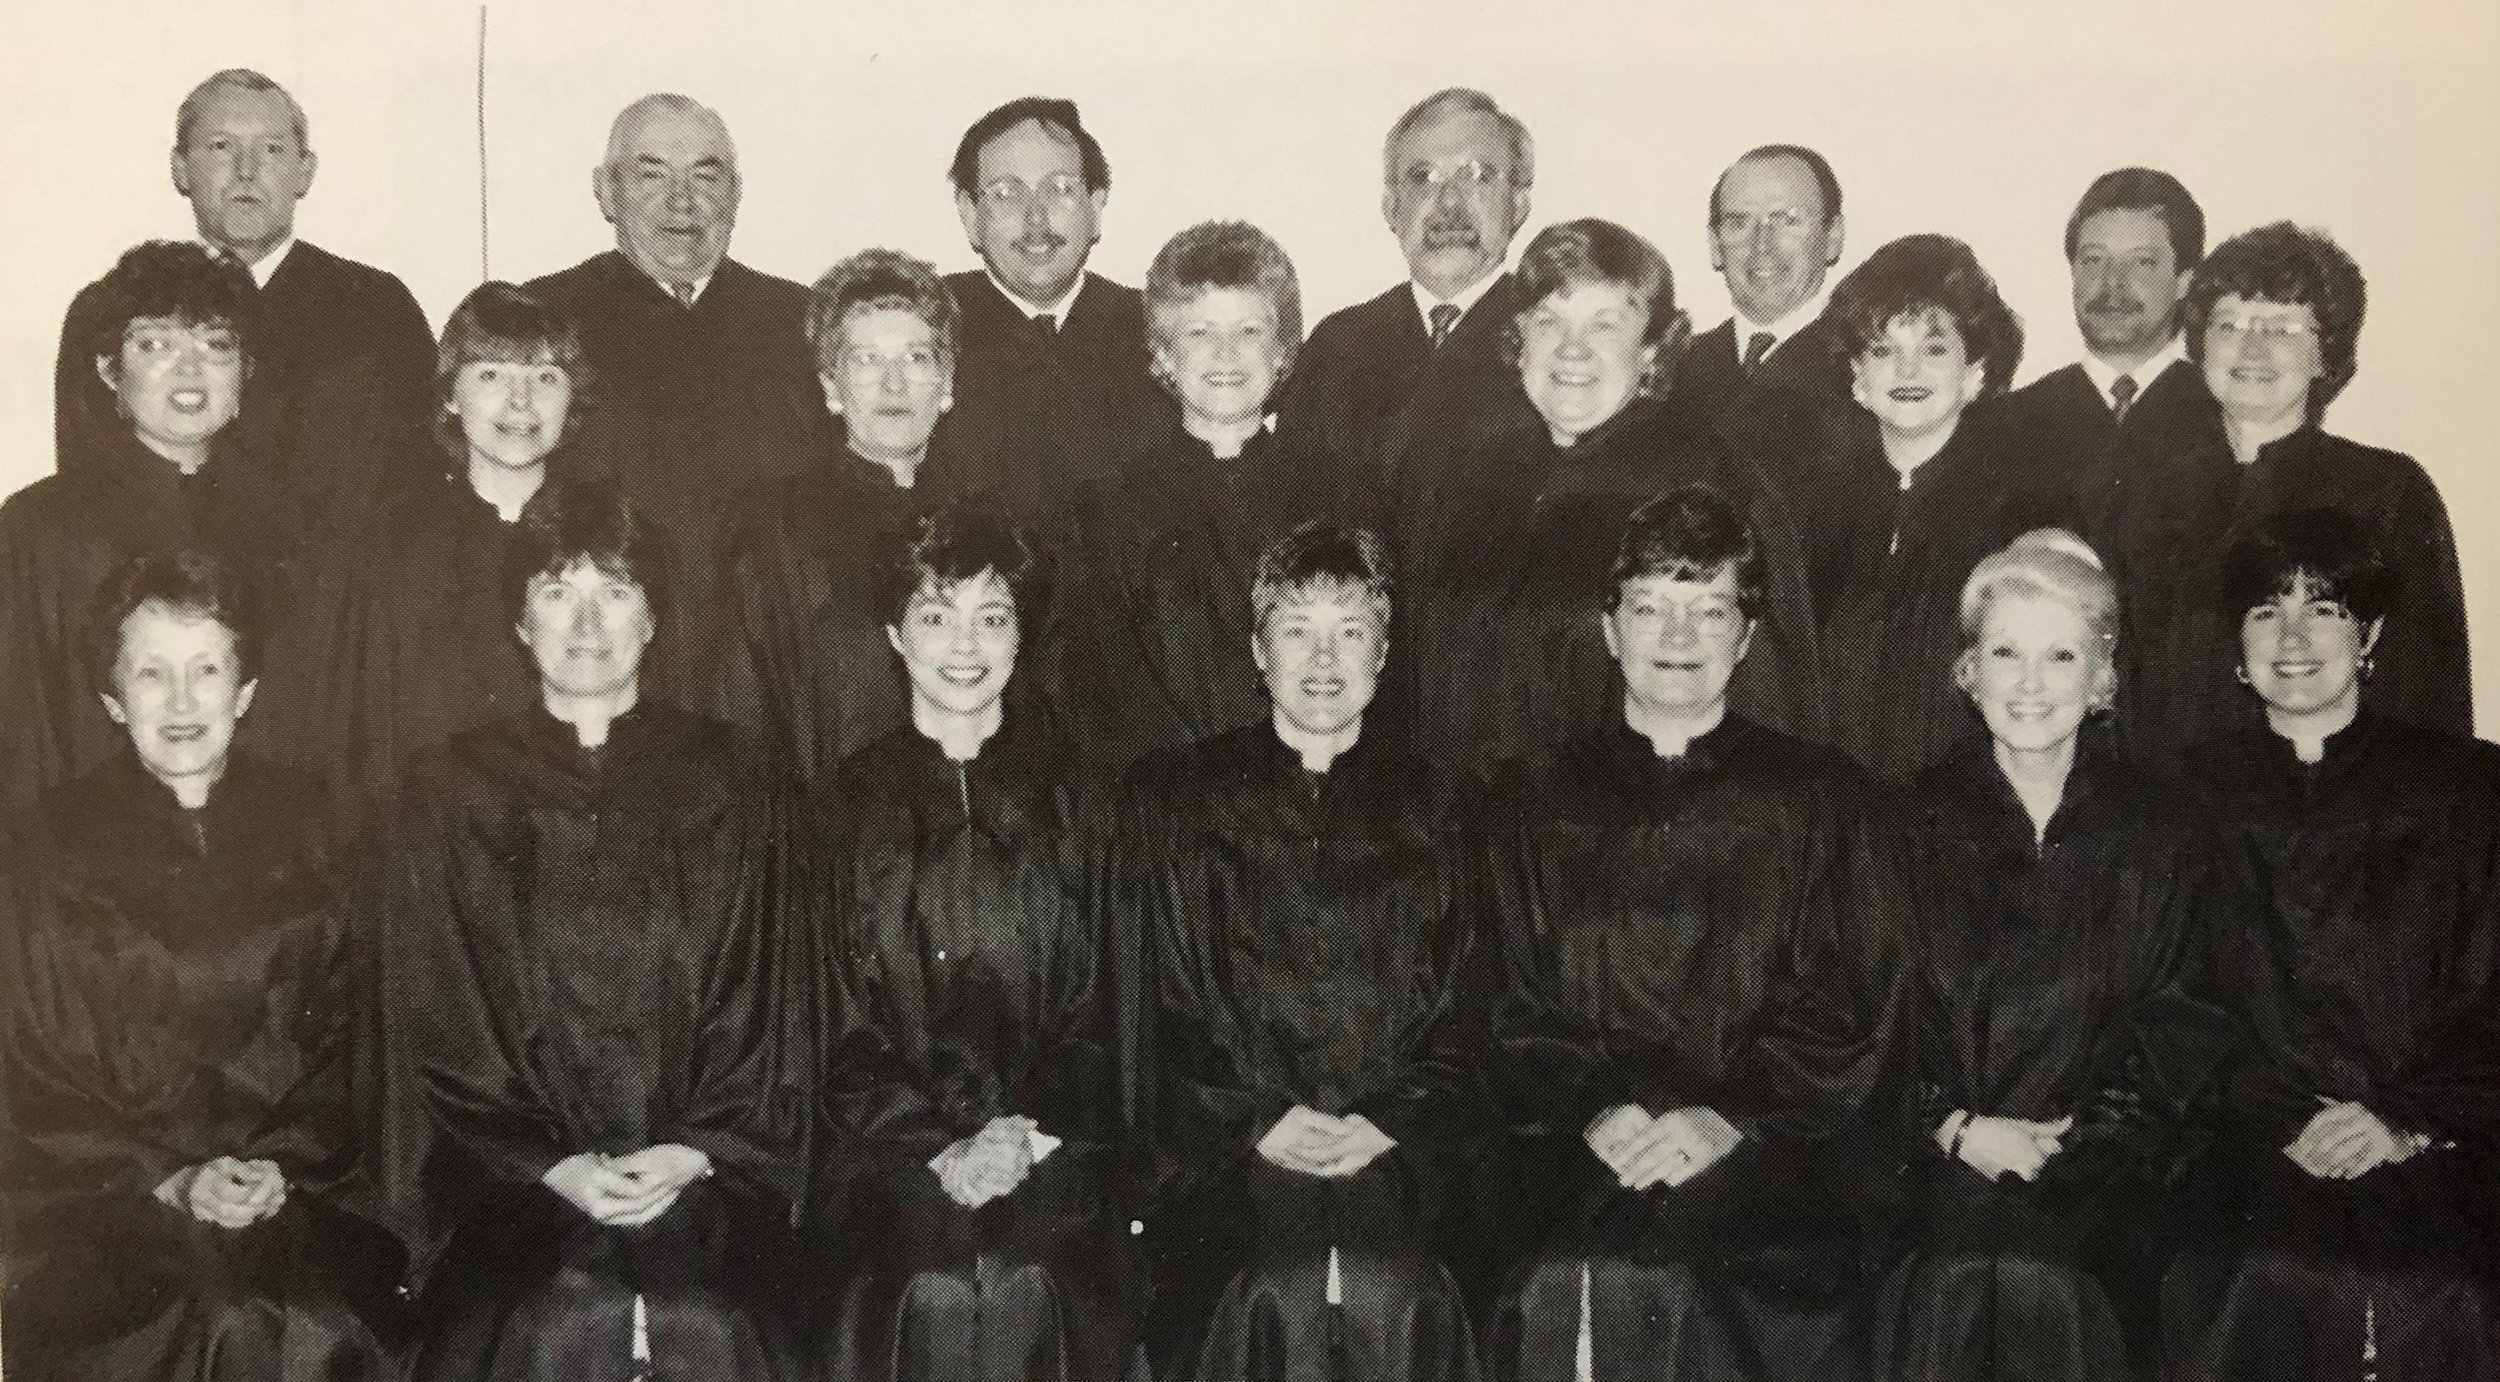 Knox Choir 1992   Back Row L-R:  Jim Henderson, Sam Johnston, Jim Walker, Don Fischer, Charles Corry, Ron Berlett  Middle Row L-R:  Brenda Kaufman, Betty Anne Olson, Lois Aitchison, Sandra Arlein, Marcie Johnston, Lori Henderson, Ethel Corry  Front Row L-R:  Marlene Henderson, Marion Bristowe, Virginia Rushton, Darlene Galbraith, Jean Fischer, Pat Sharpless, Lynn Kerr